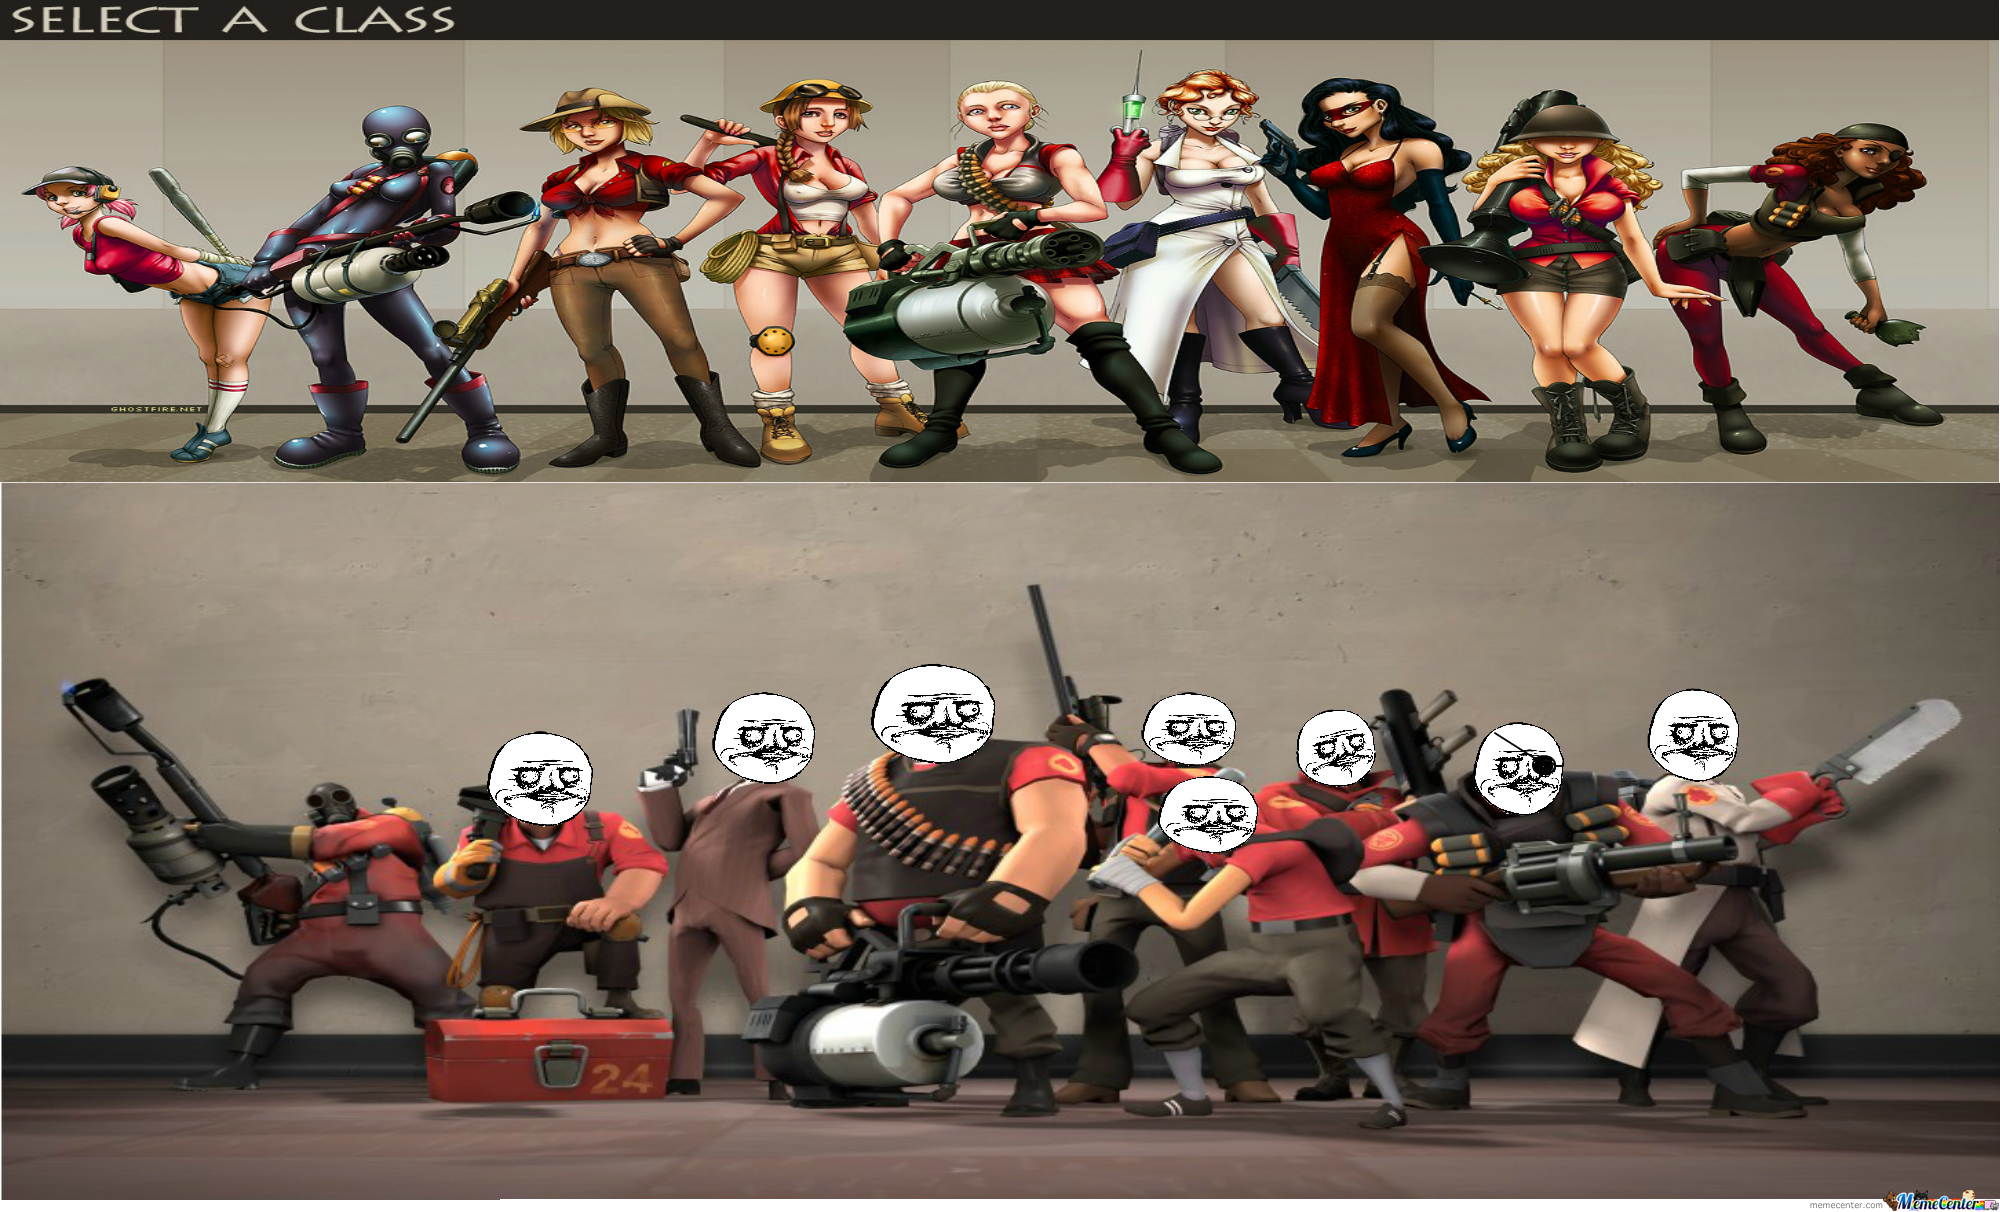 Dat Team Fortress 2